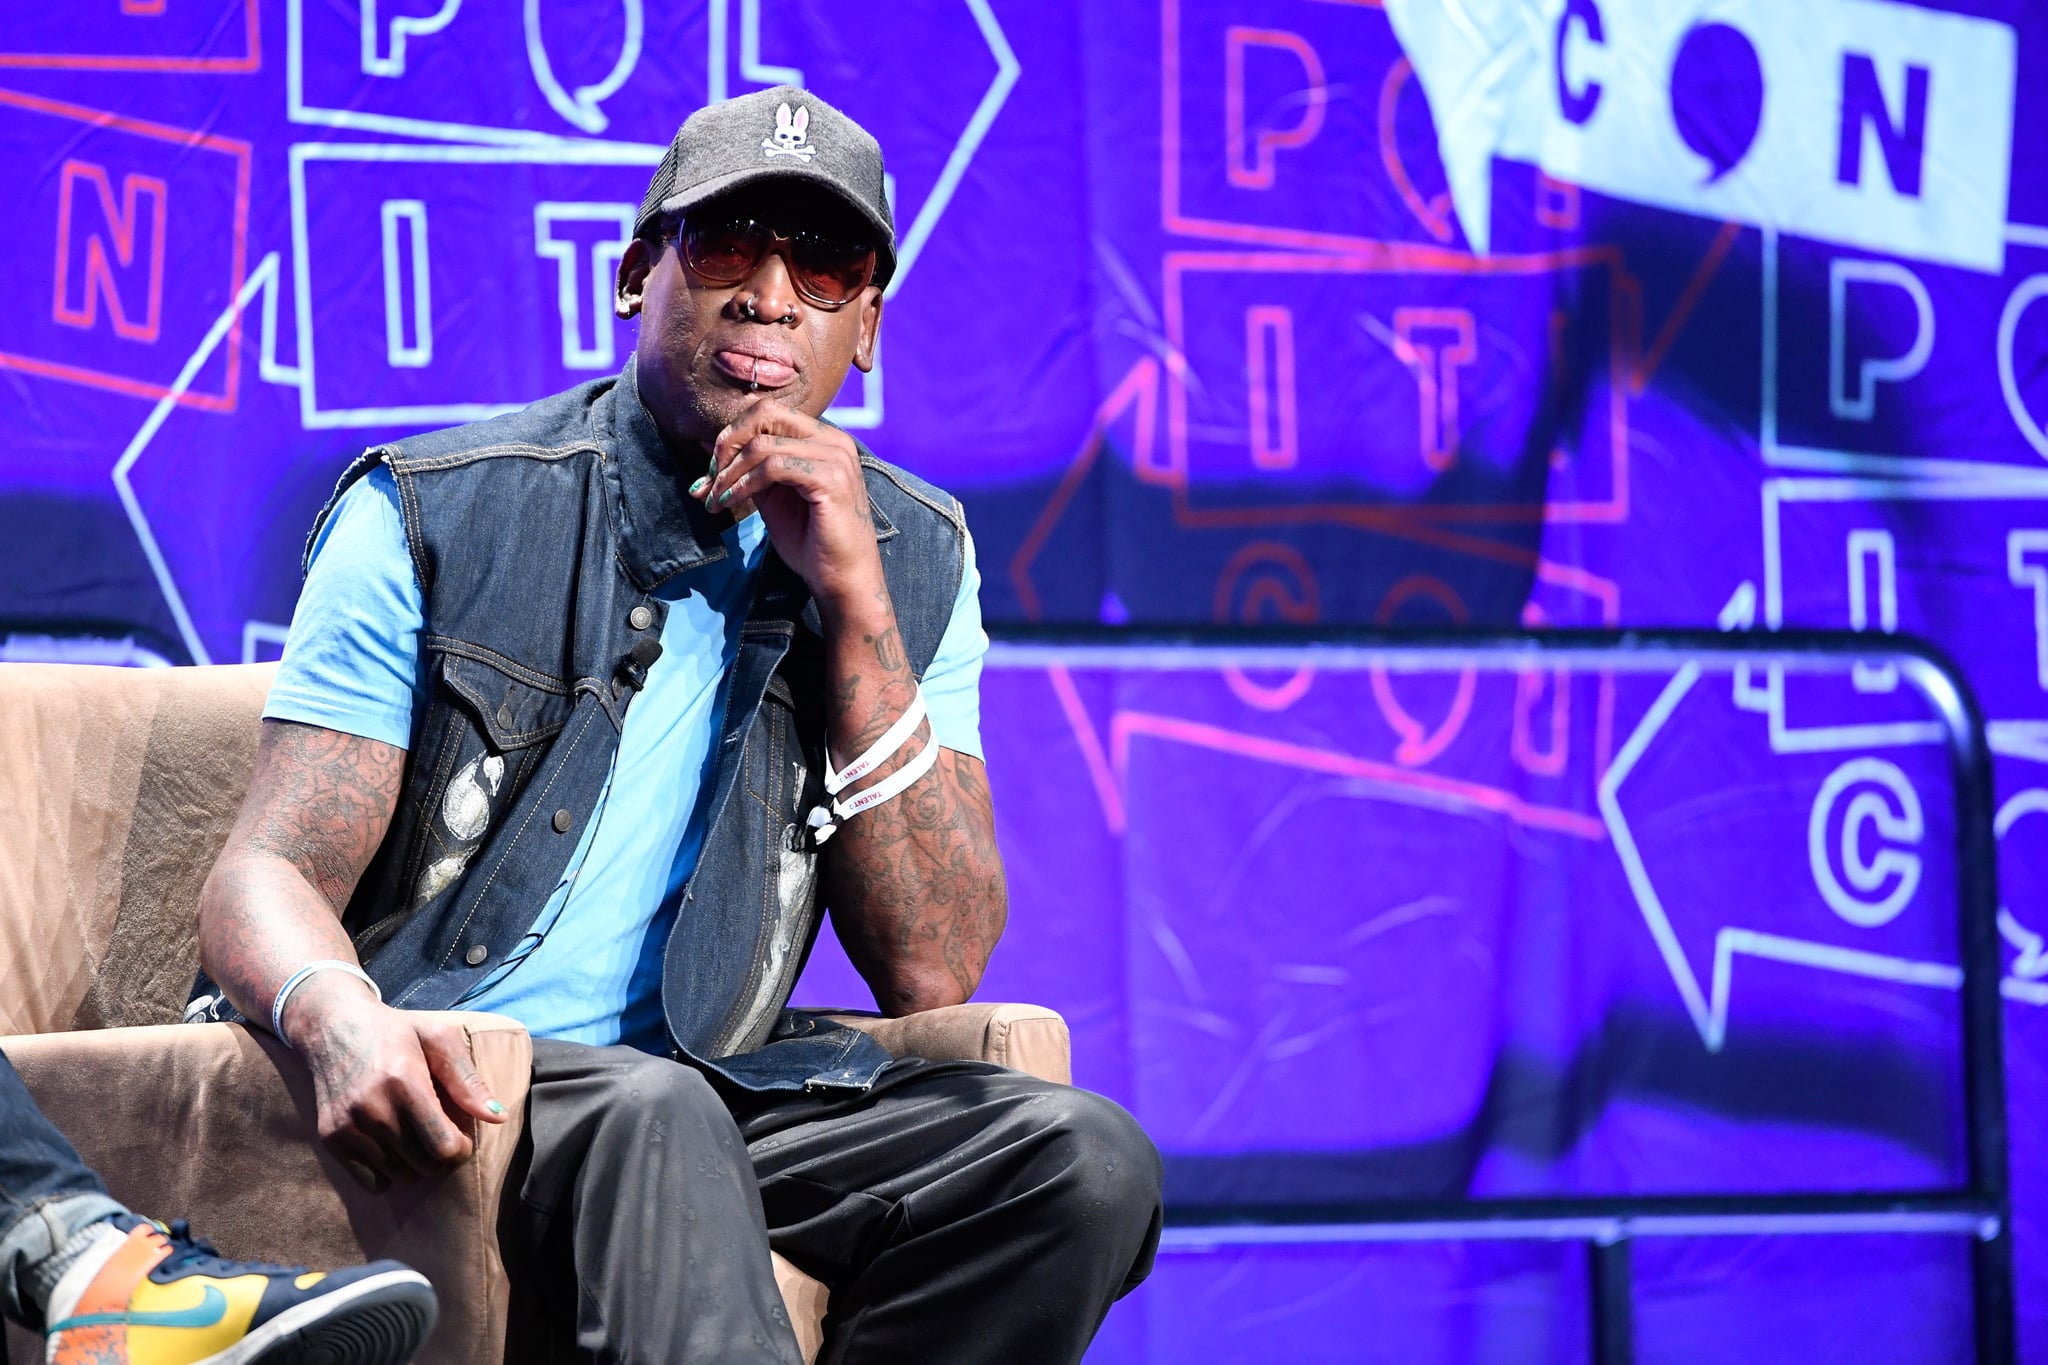 LOS ANGELES, CA - OCTOBER 20:  Dennis Rodman speaks onstage at Politicon 2018 at Los Angeles Convention Center on October 20, 2018 in Los Angeles, California.  (Photo by Michael S. Schwartz/Getty Images)